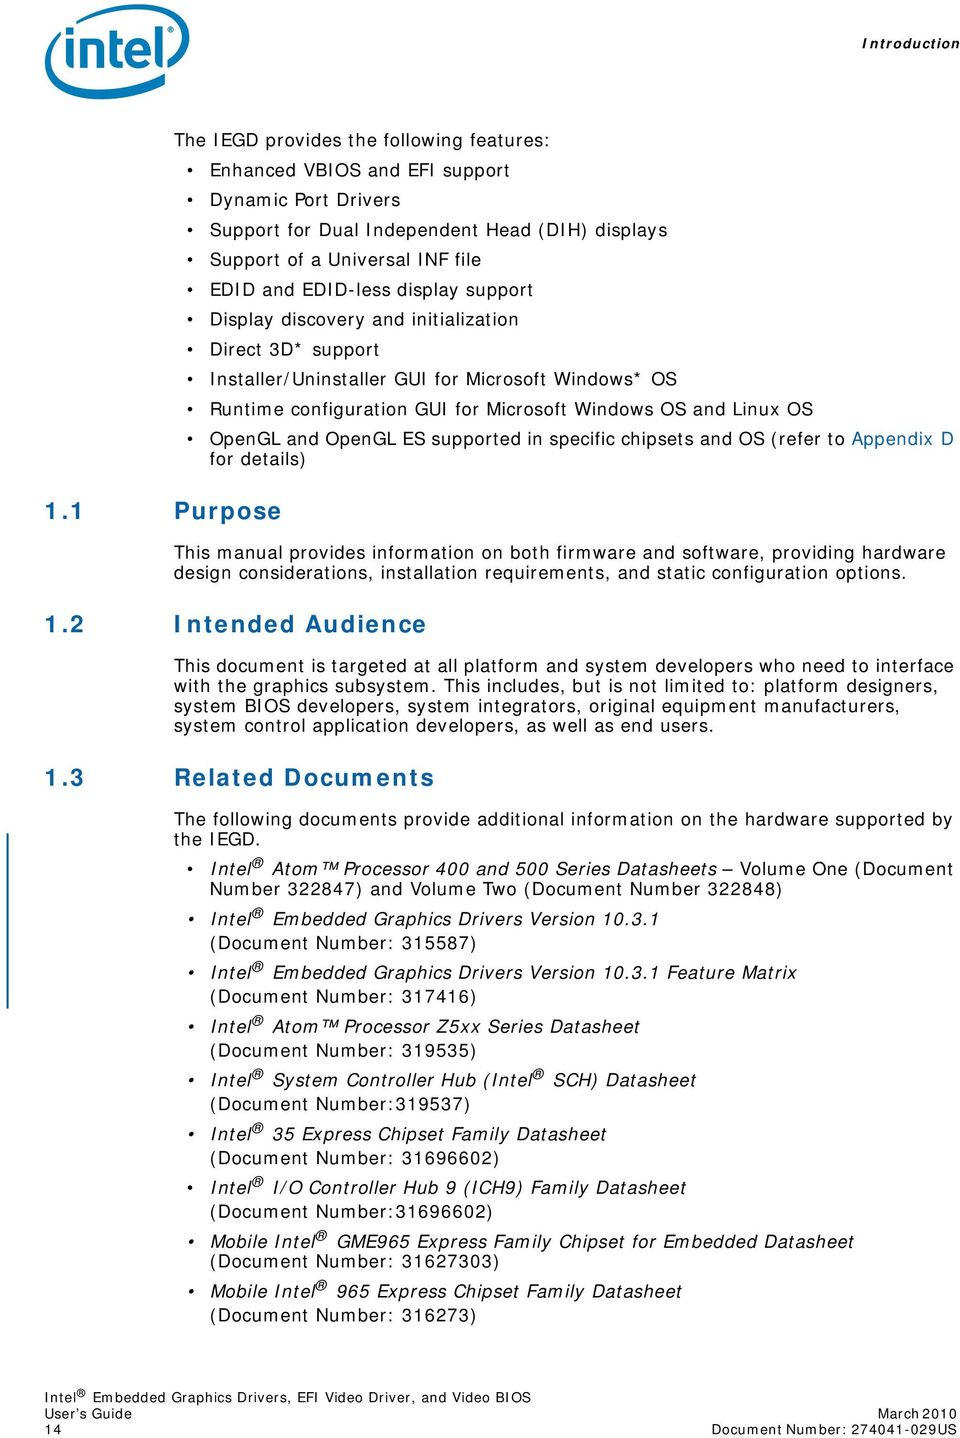 Intel Embedded Graphics Drivers, EFI Video Driver, and Video